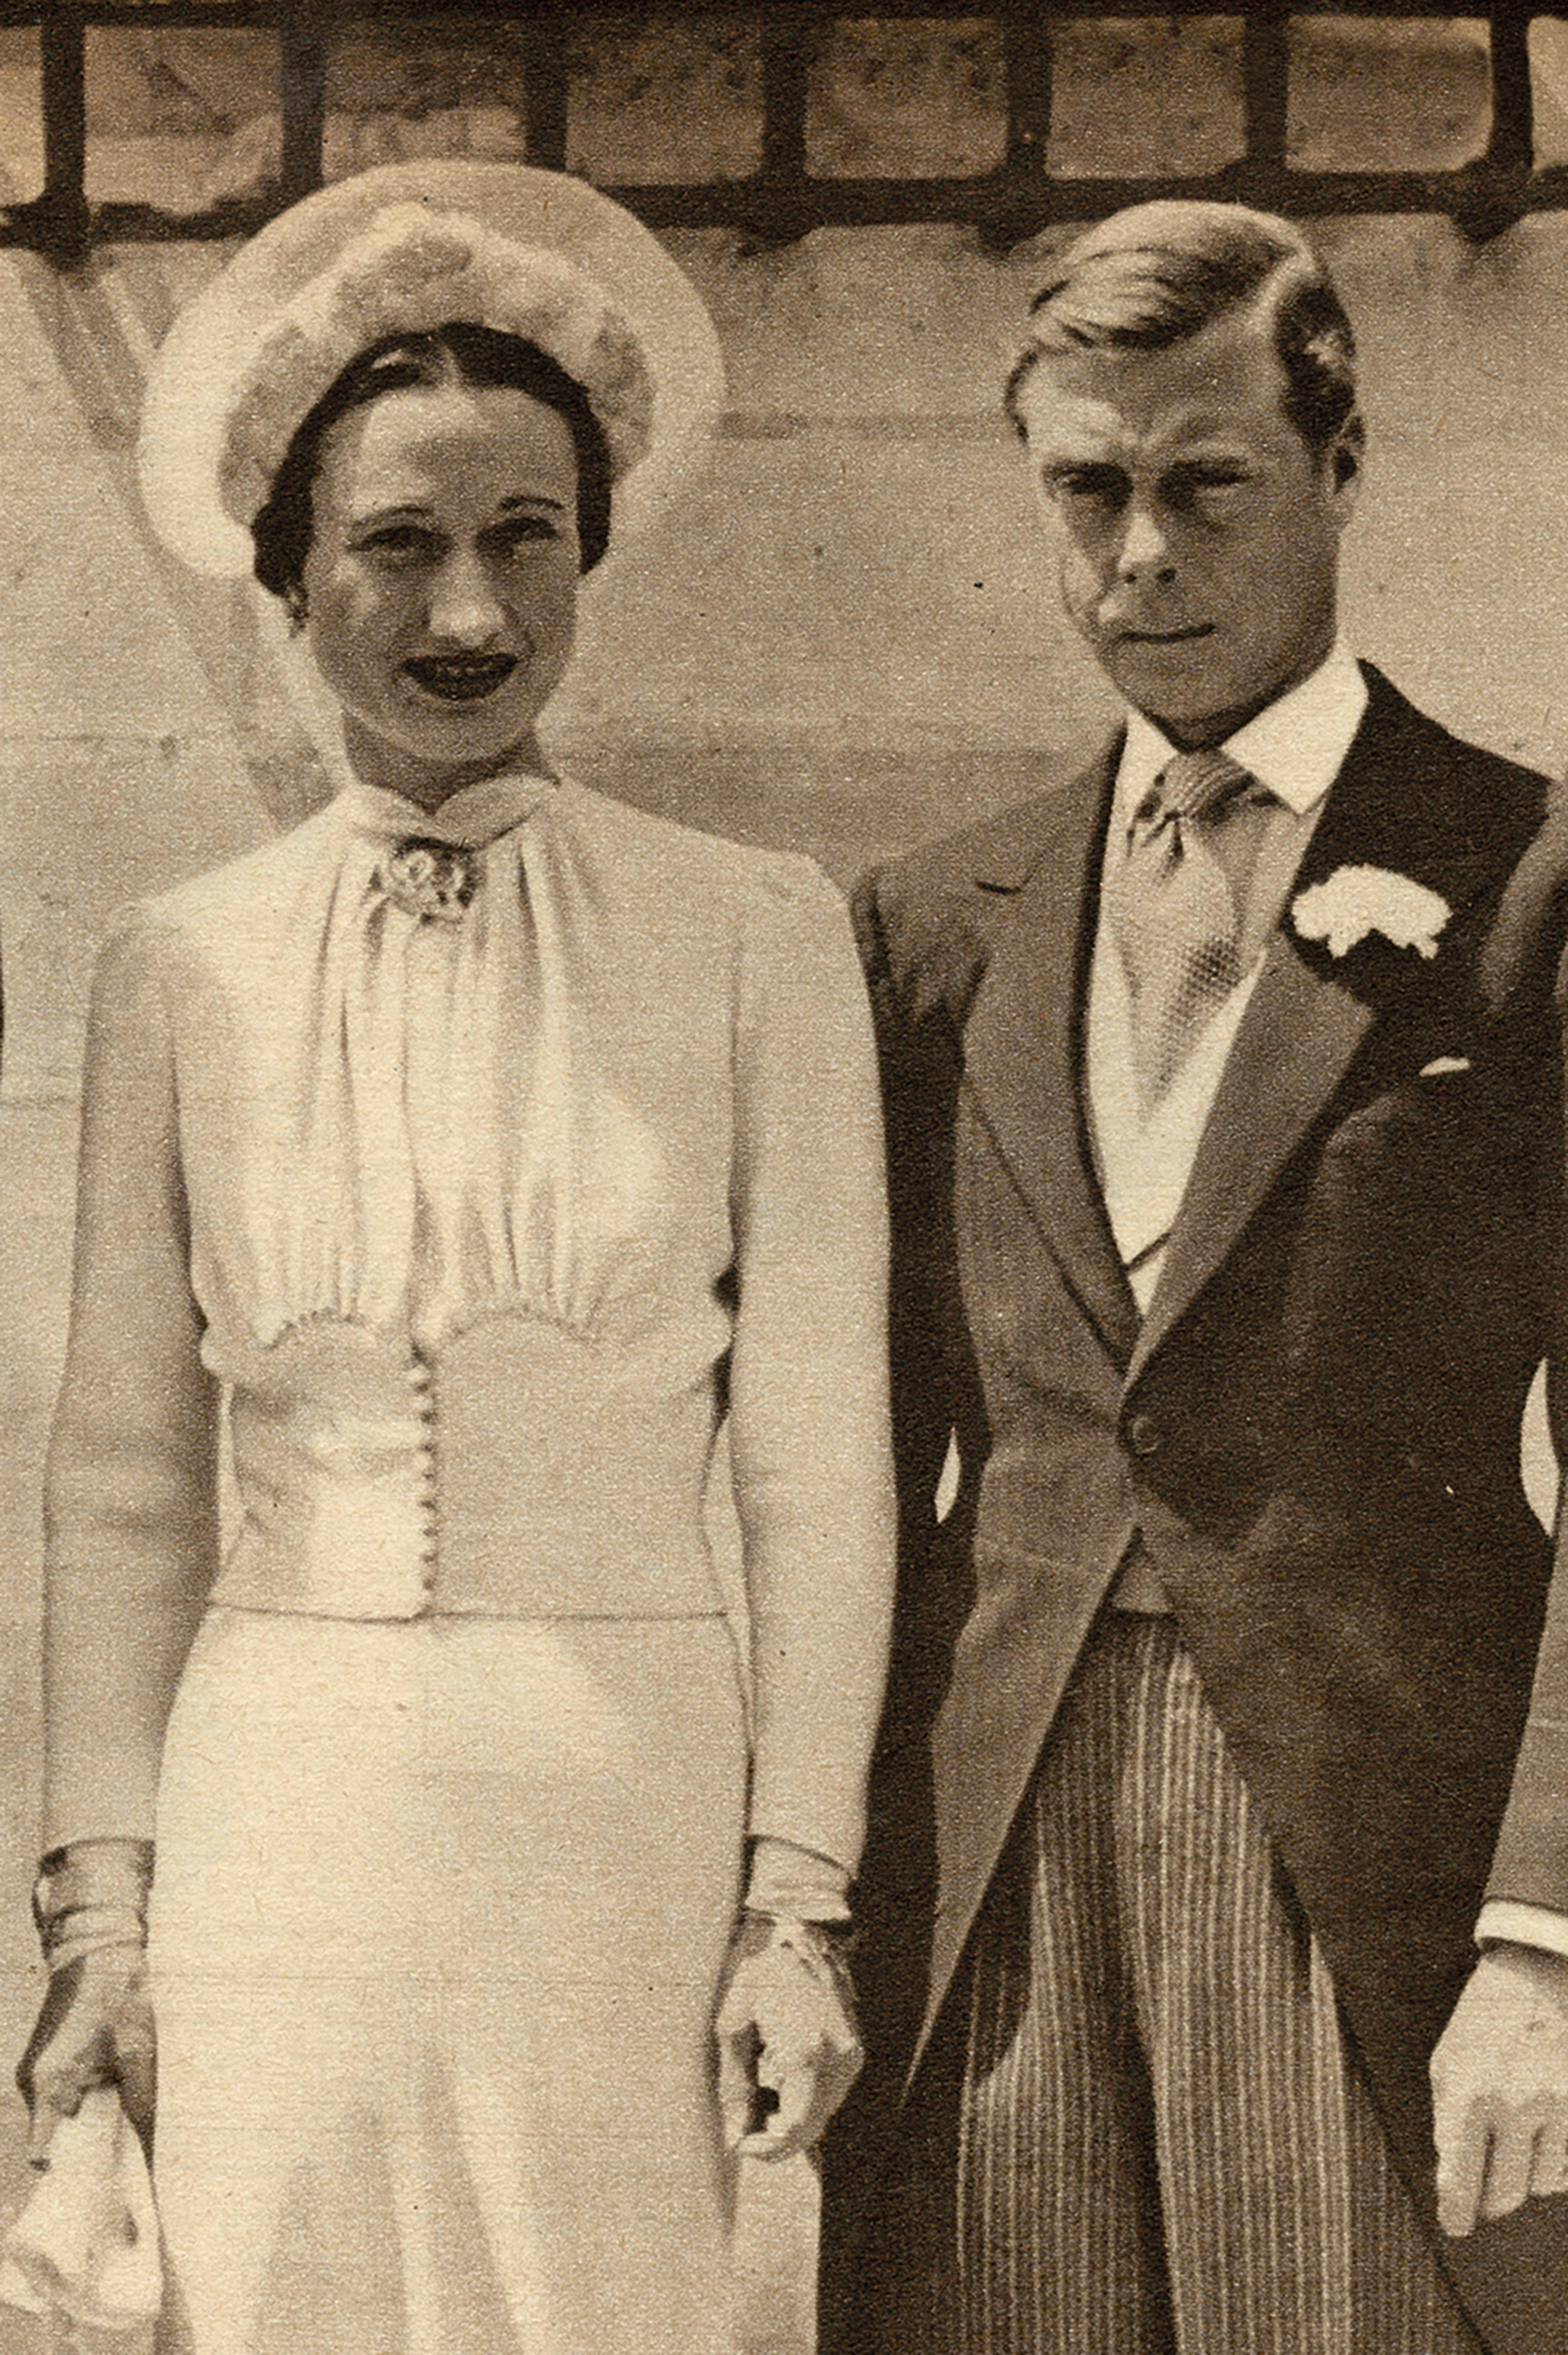 King Edward VIII with Wallis SImpson